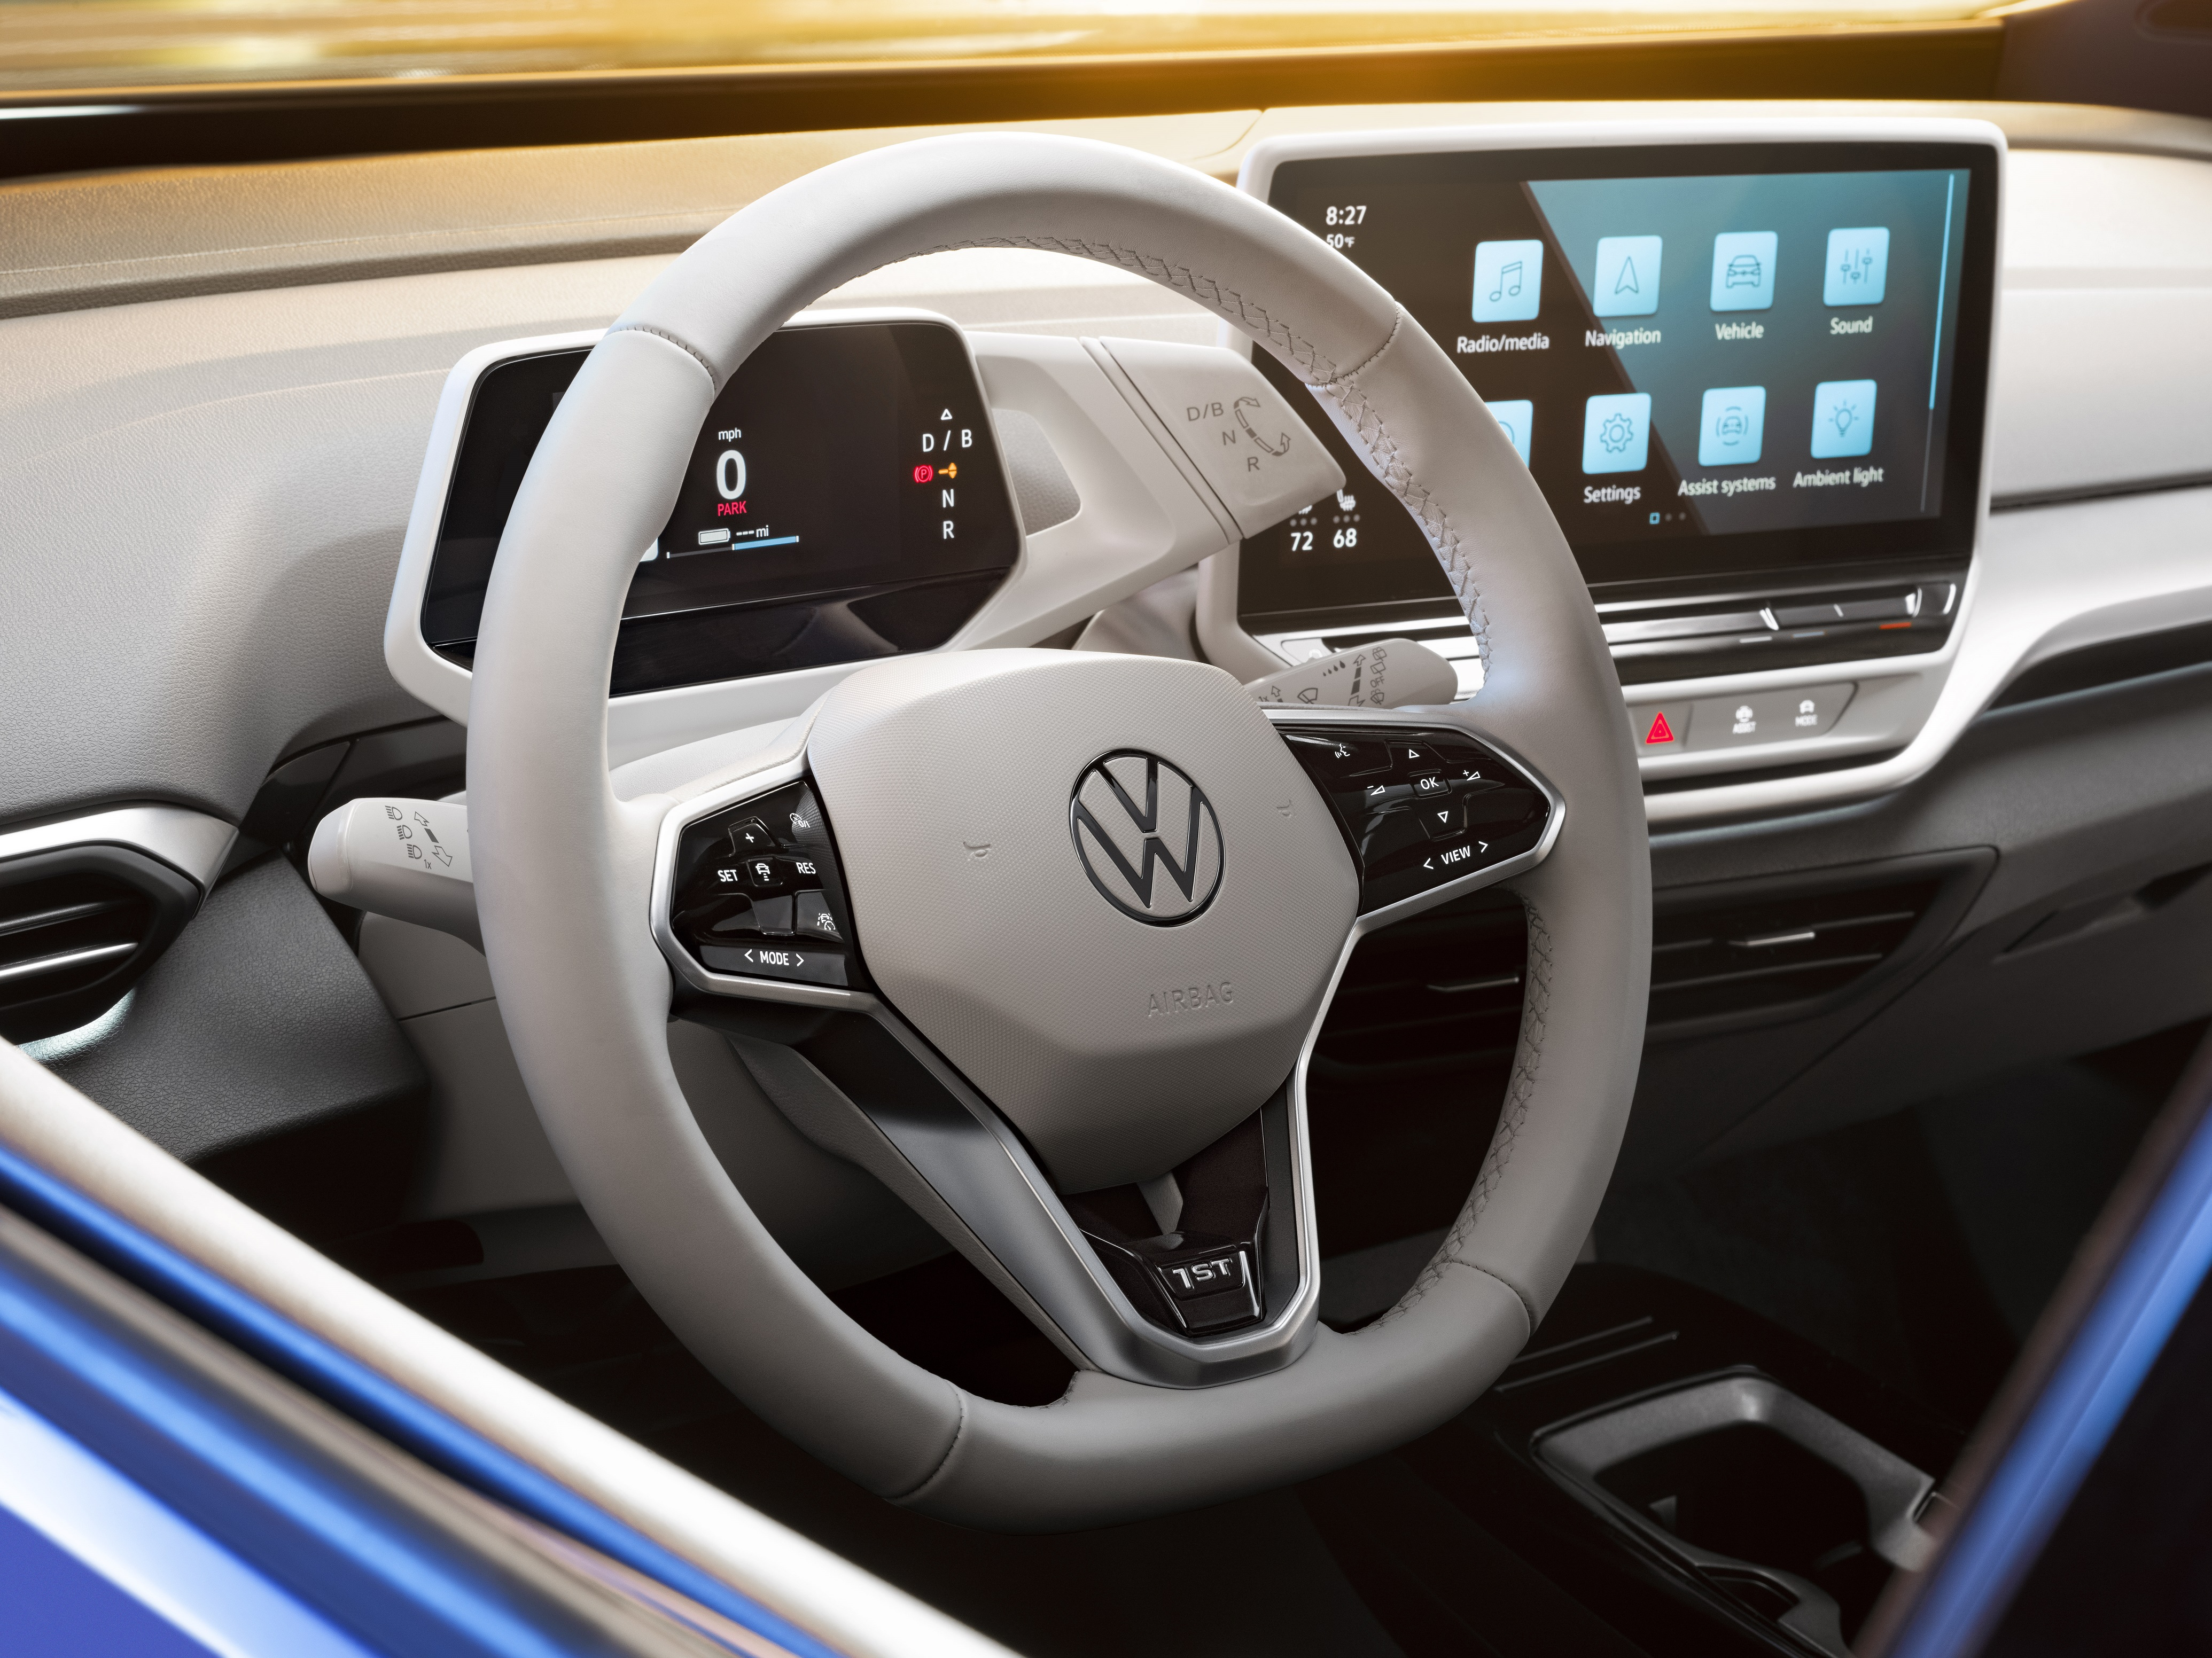 THE VOLKSWAGEN ID.4 EV COMMUNICATES WITH LIGHT